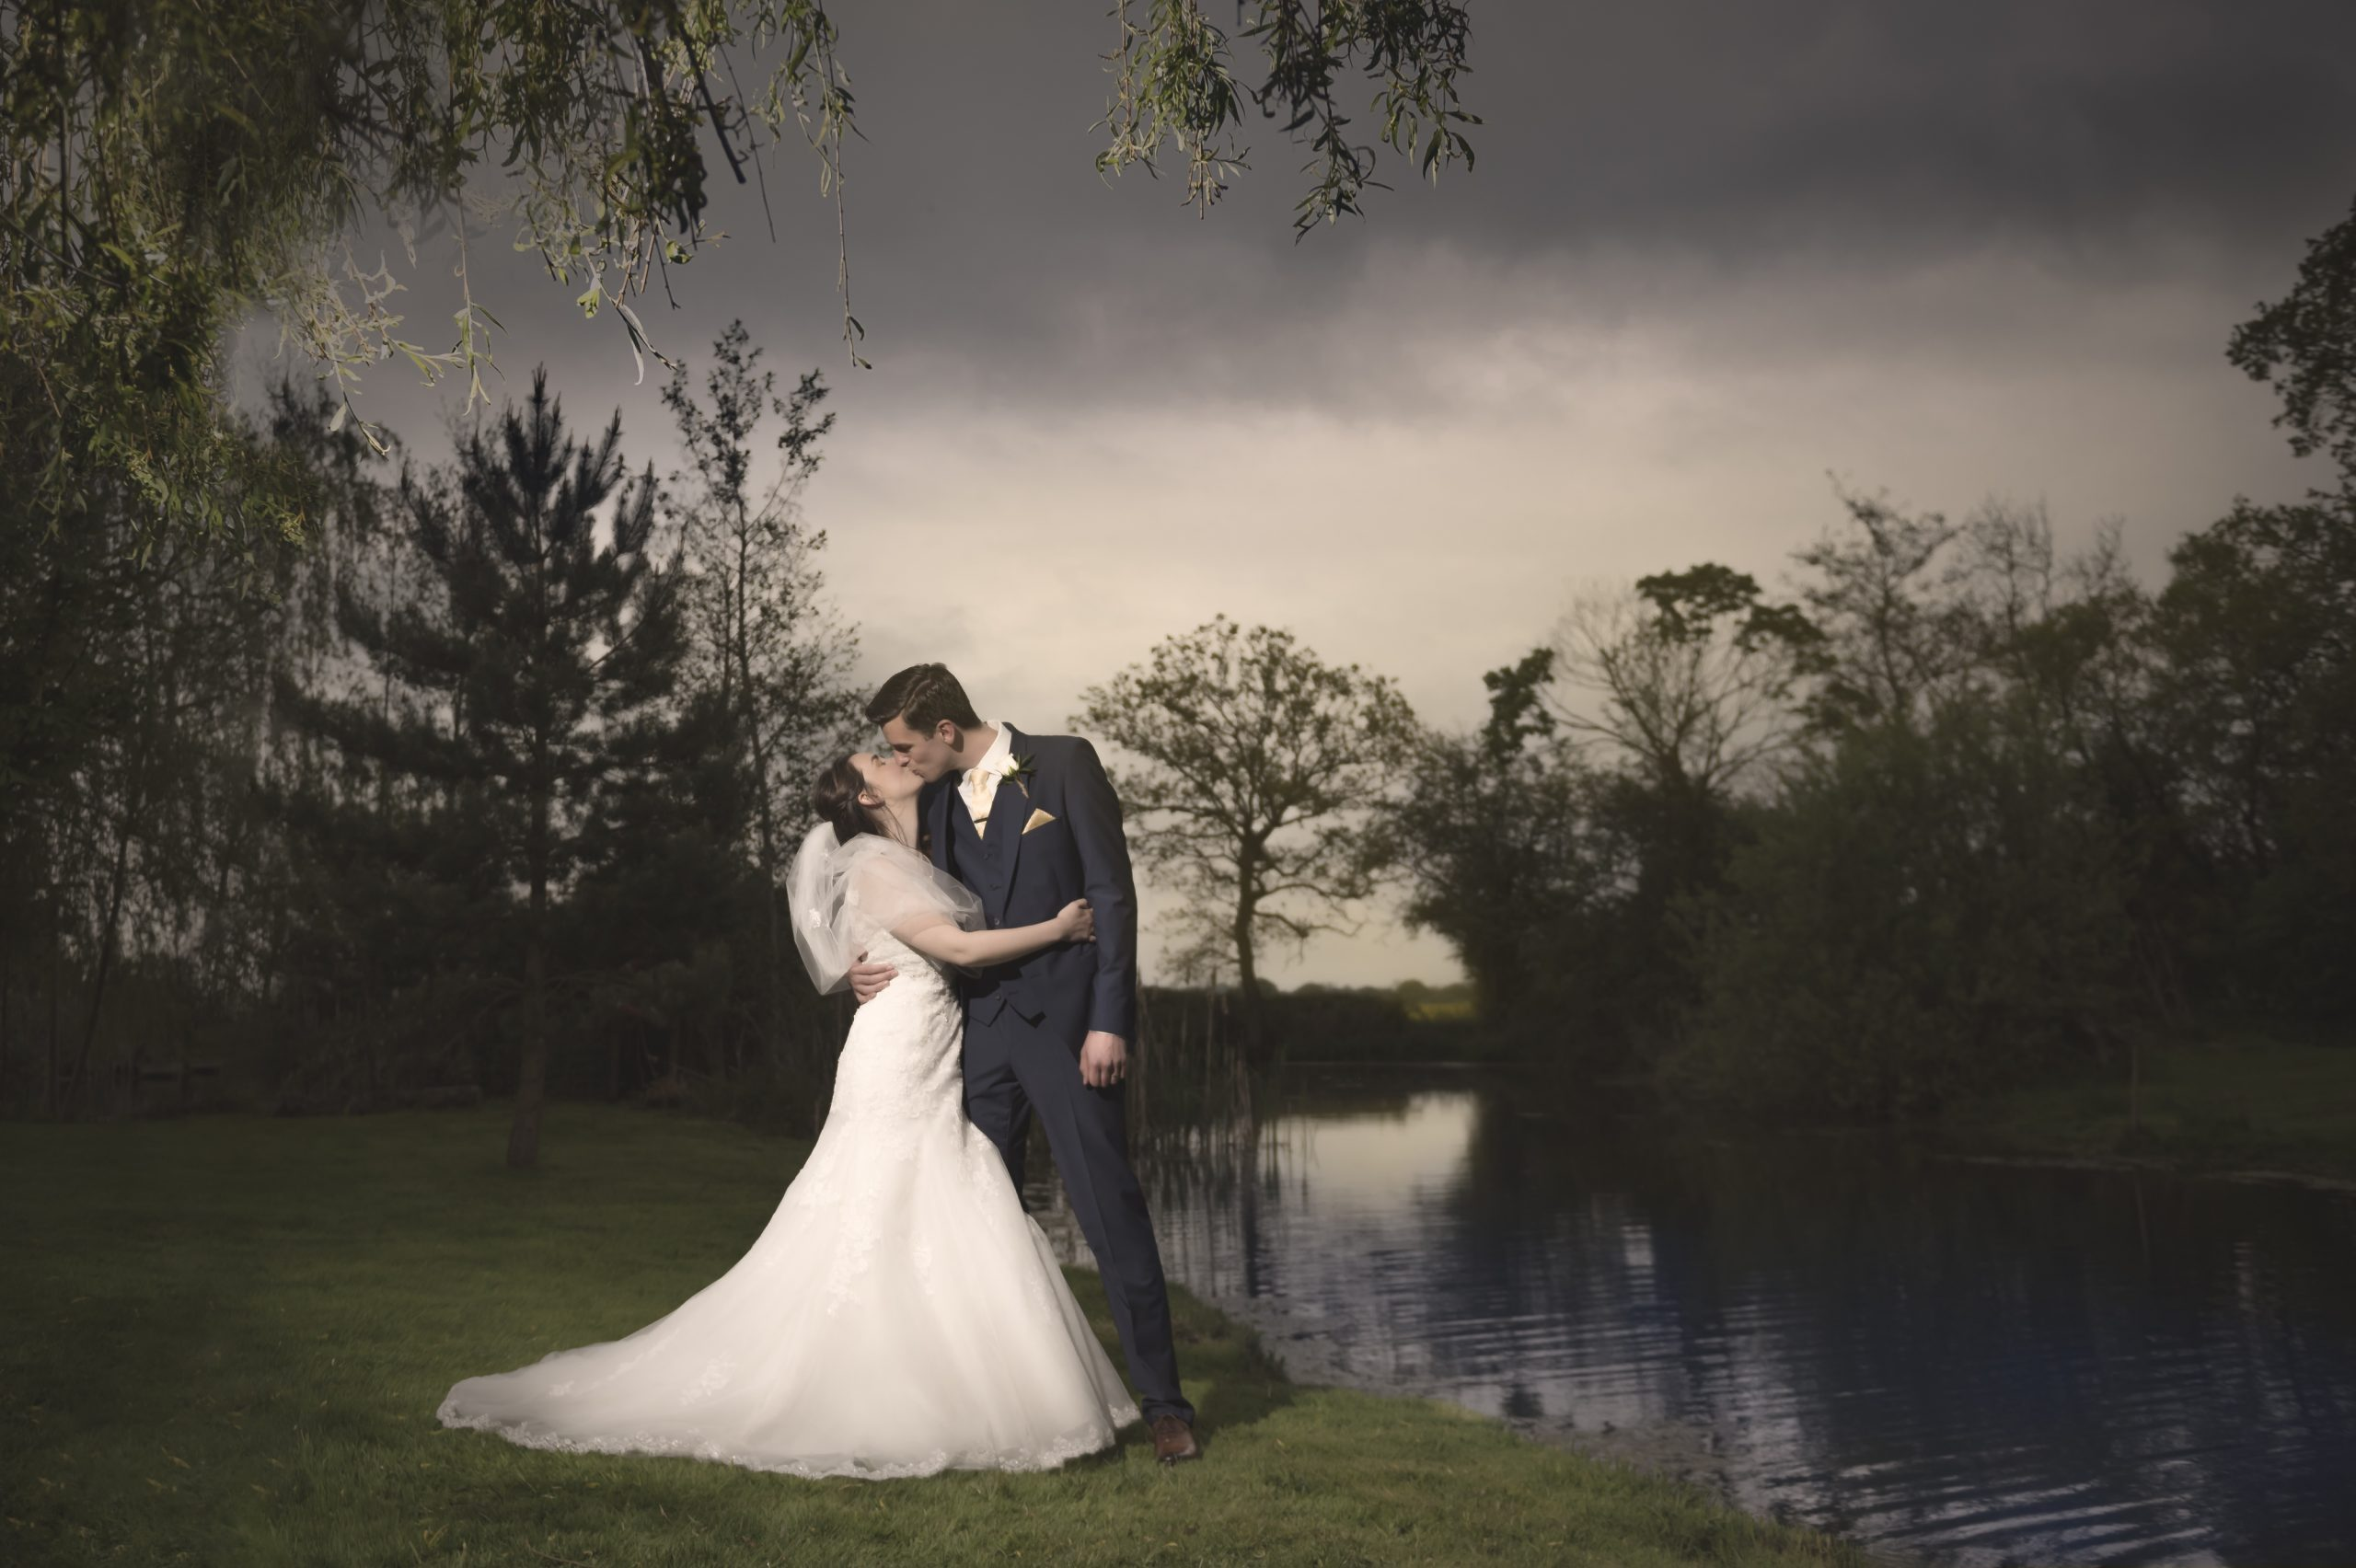 Wootton Park by MK Wedding Photography